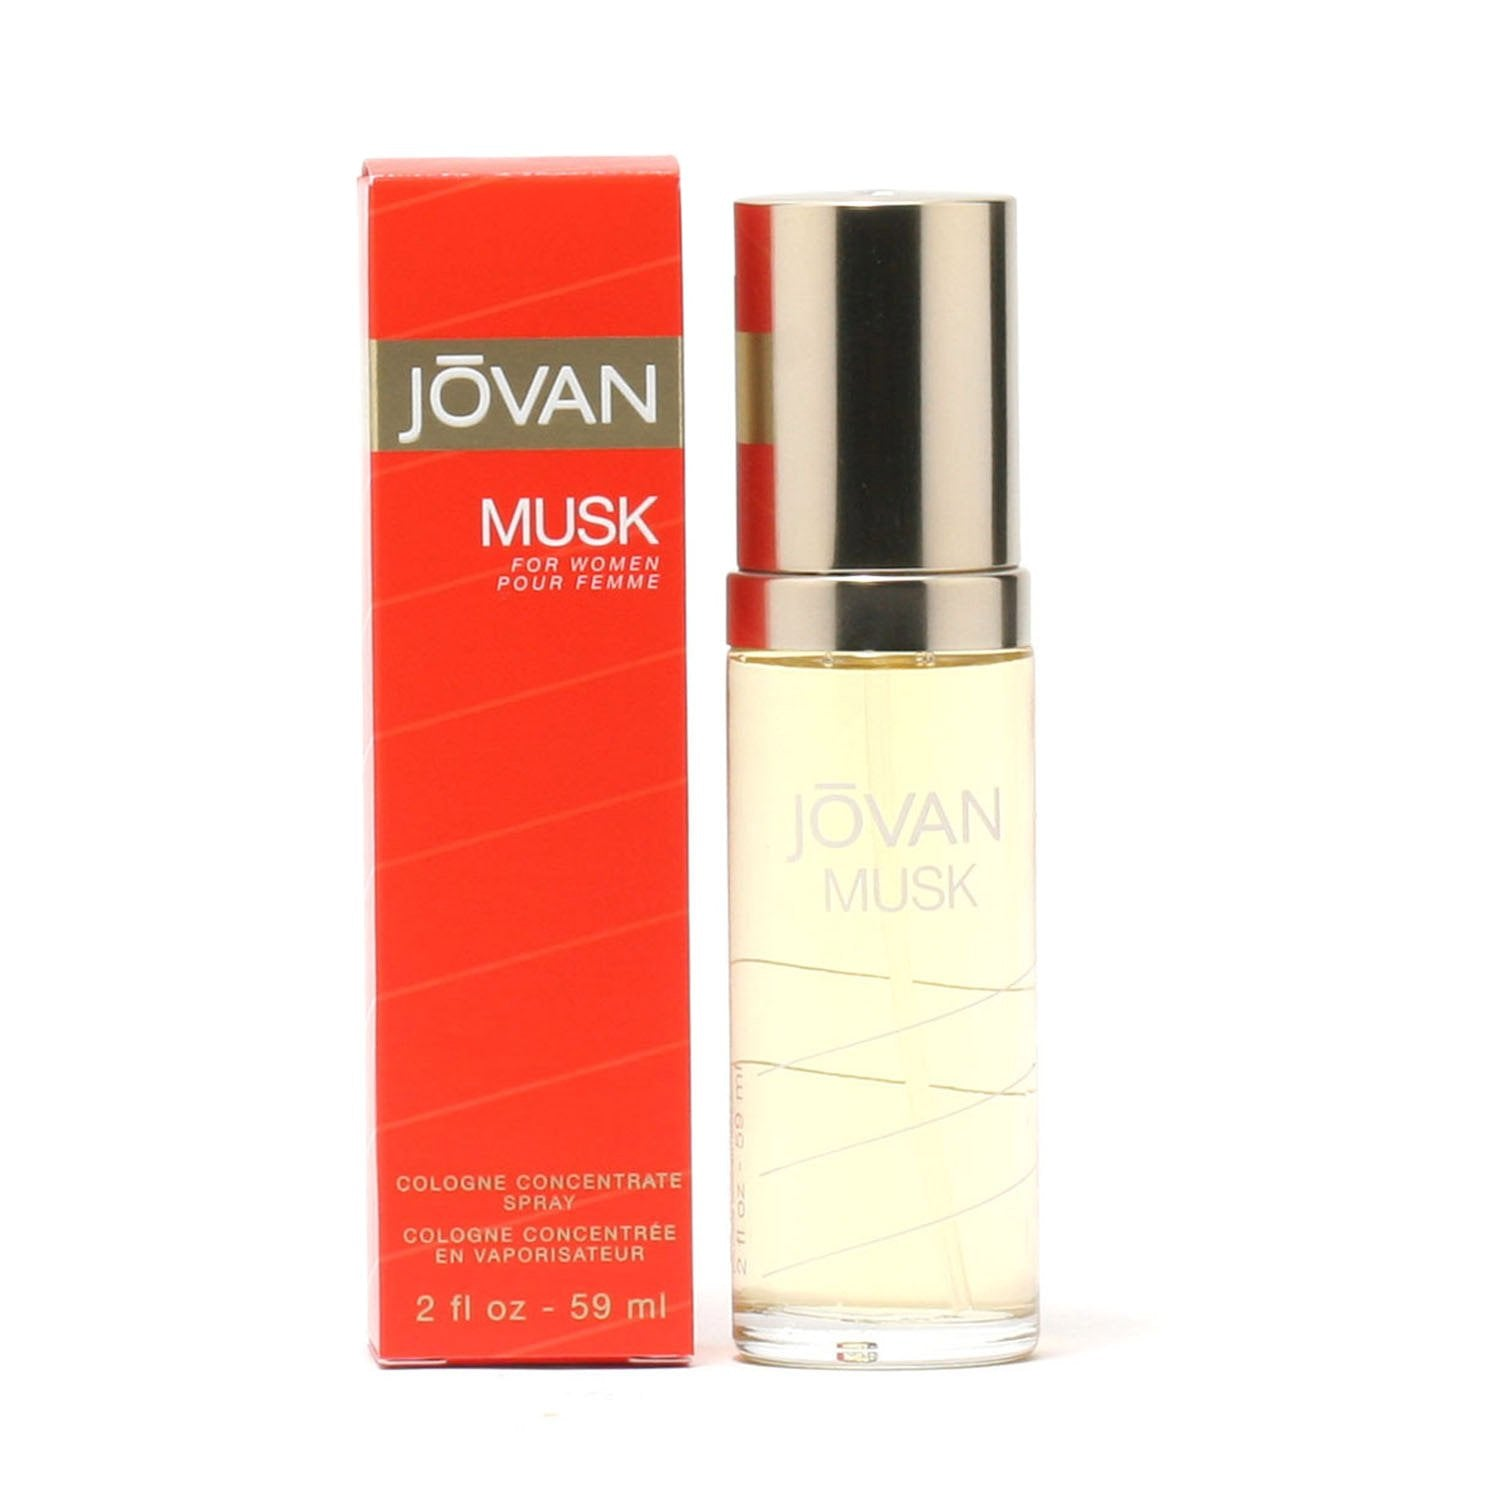 Perfume - JOVAN MUSK FOR WOMEN - COLOGNE SPRAY